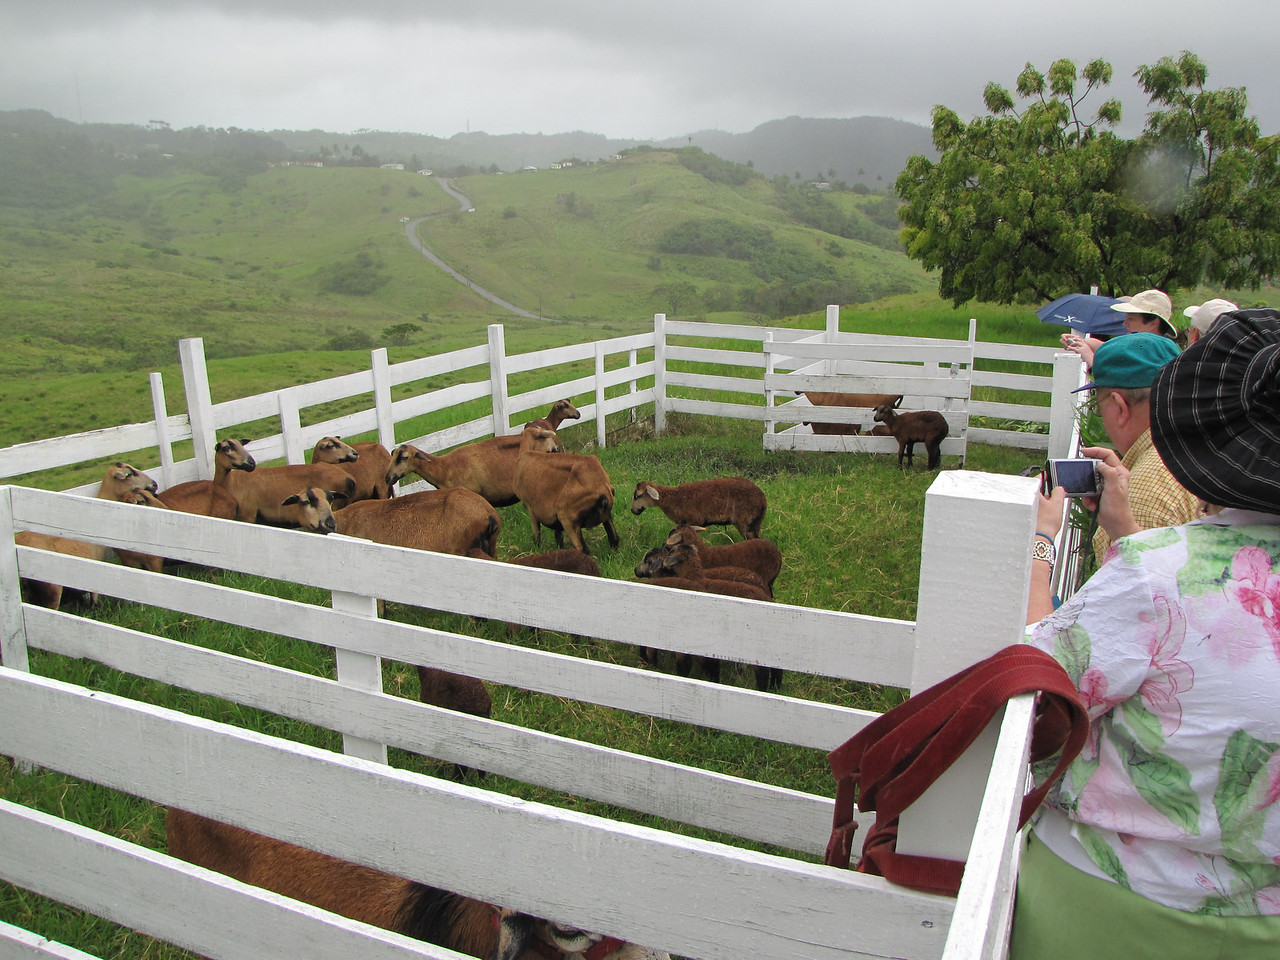 We did get to see some Barbados Blackbelly Sheep.